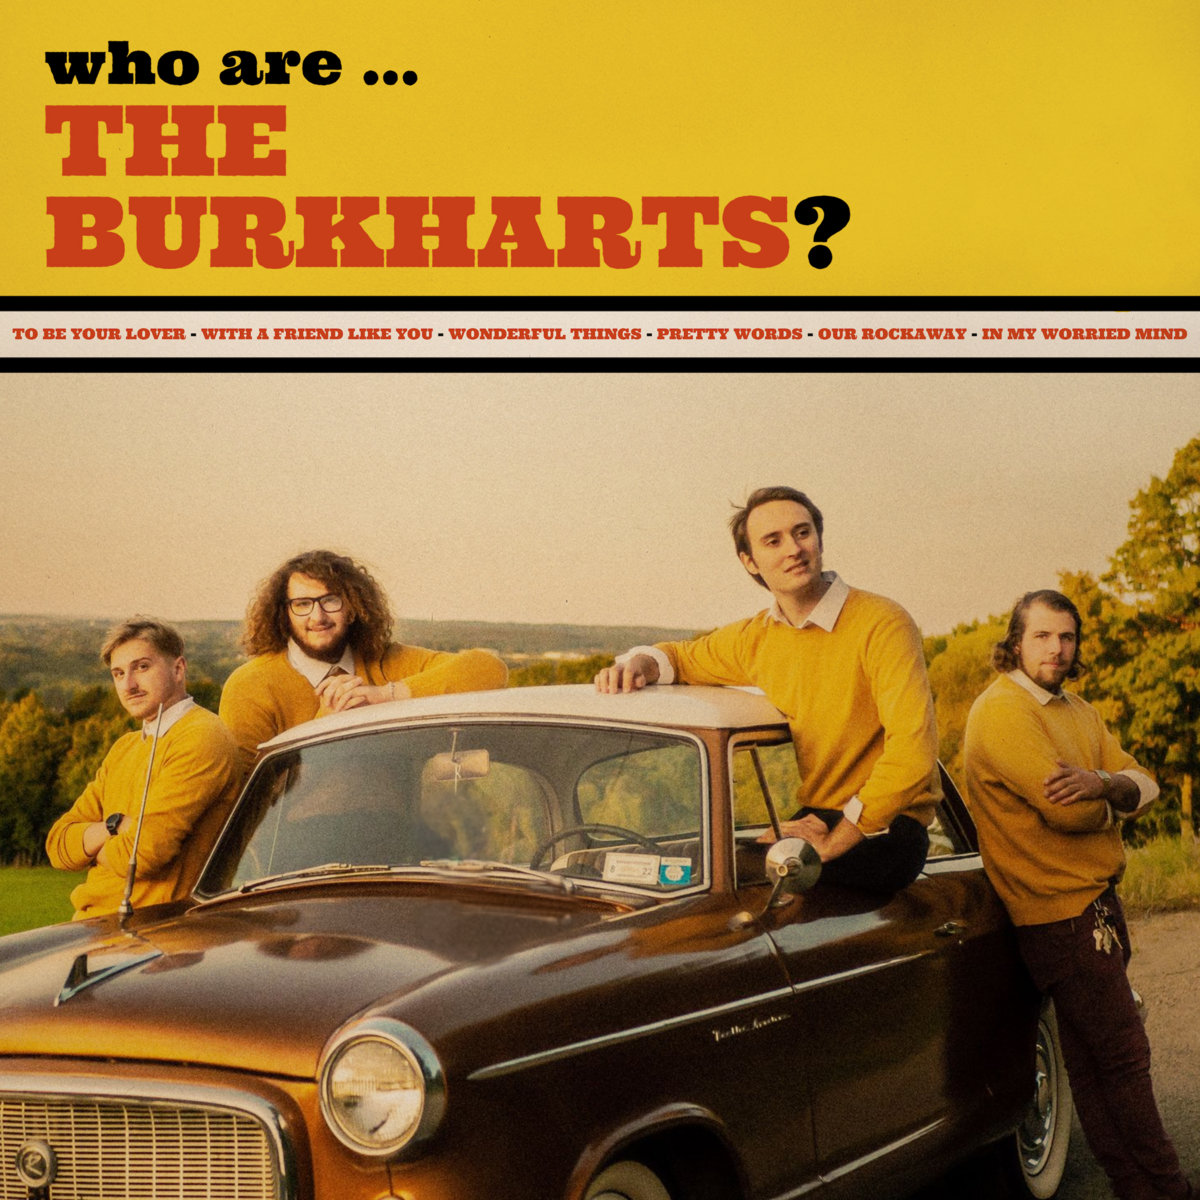 Who are the burkharts?